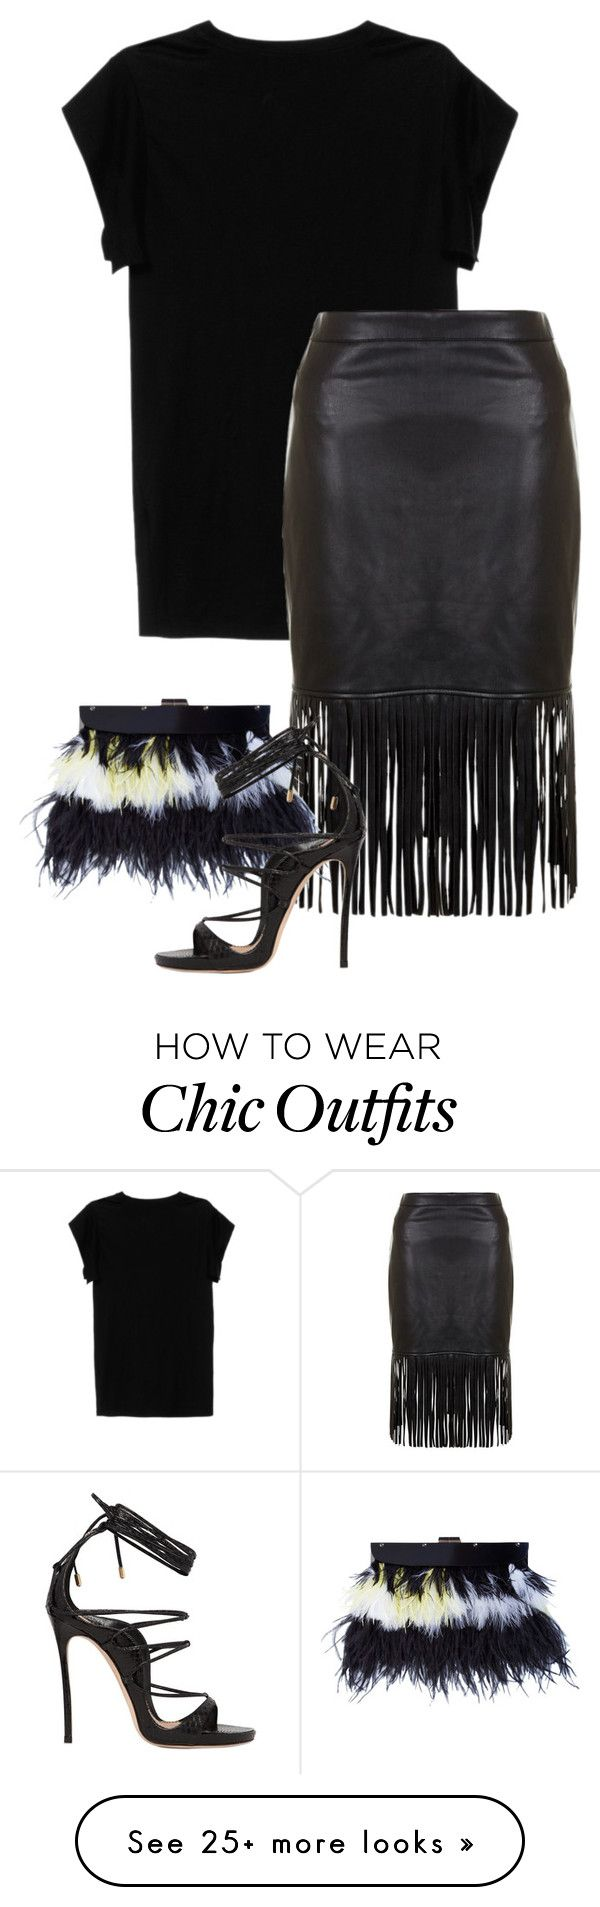 """Untitled #1039"" by thesweetthread on Polyvore featuring moda, Isabel Marant, BCBGMAXAZRIA e Dsquared2"